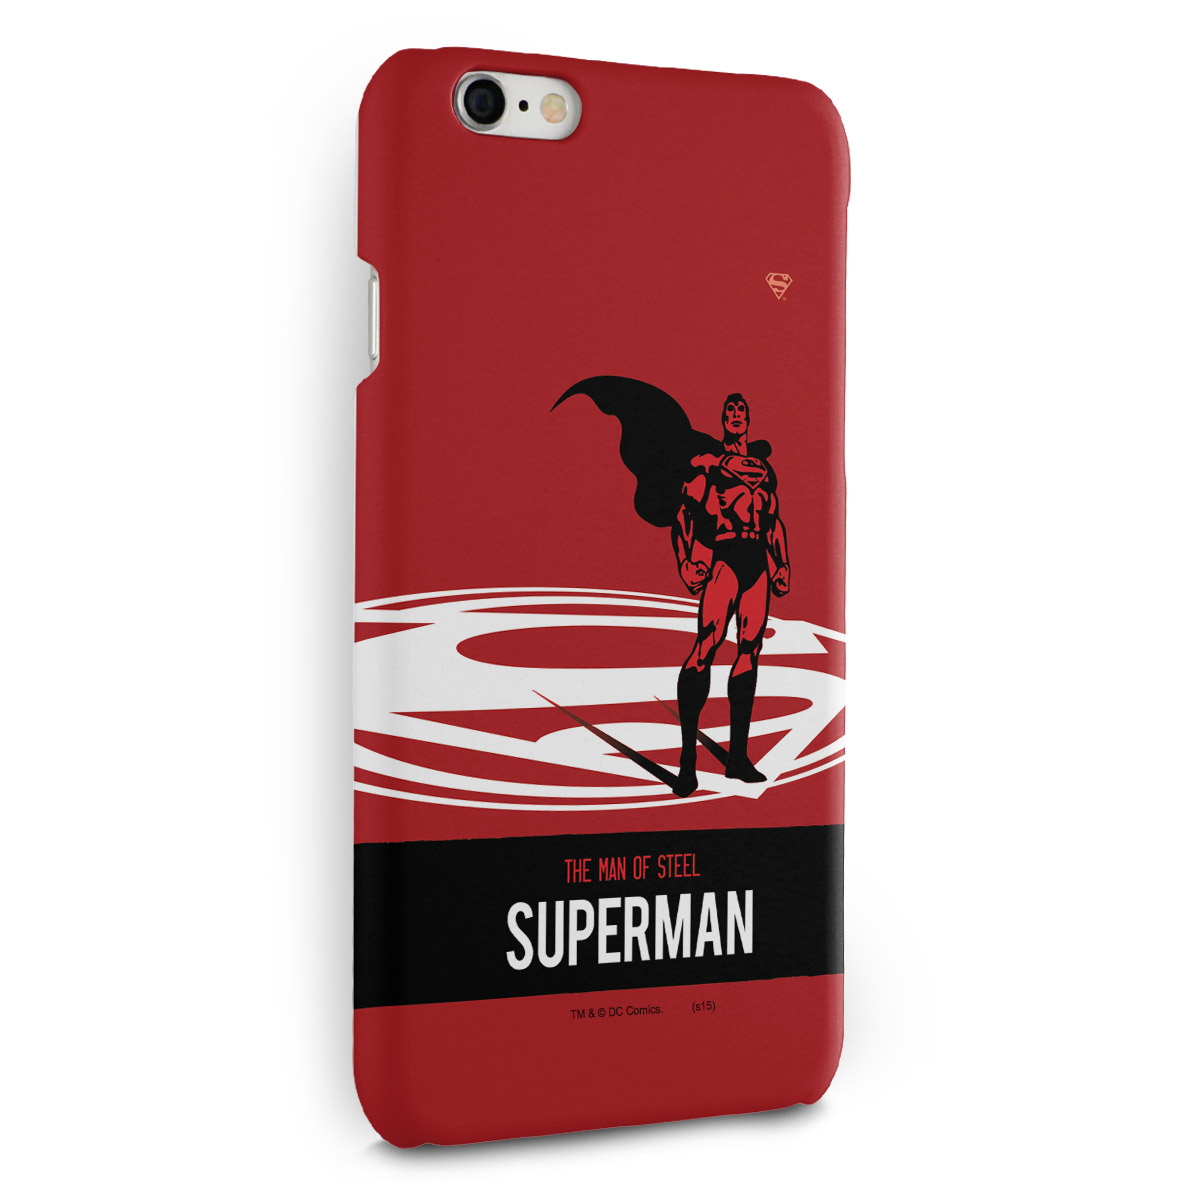 Capa para iPhone 6/6S Plus Superman The Man of Steel